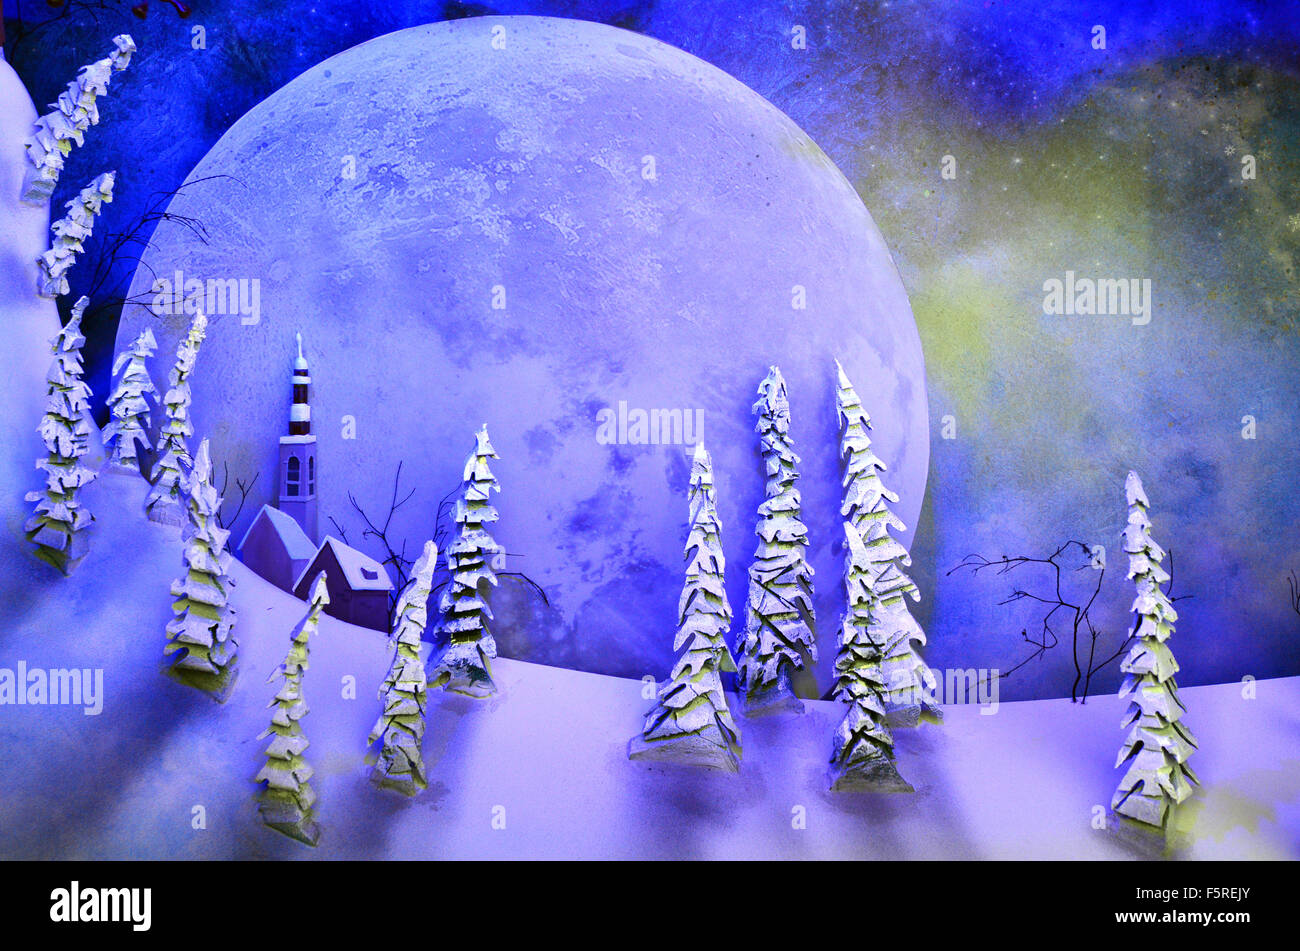 Background of full moon rising over fantasy landscape of snow and forest trees at night. - Stock Image